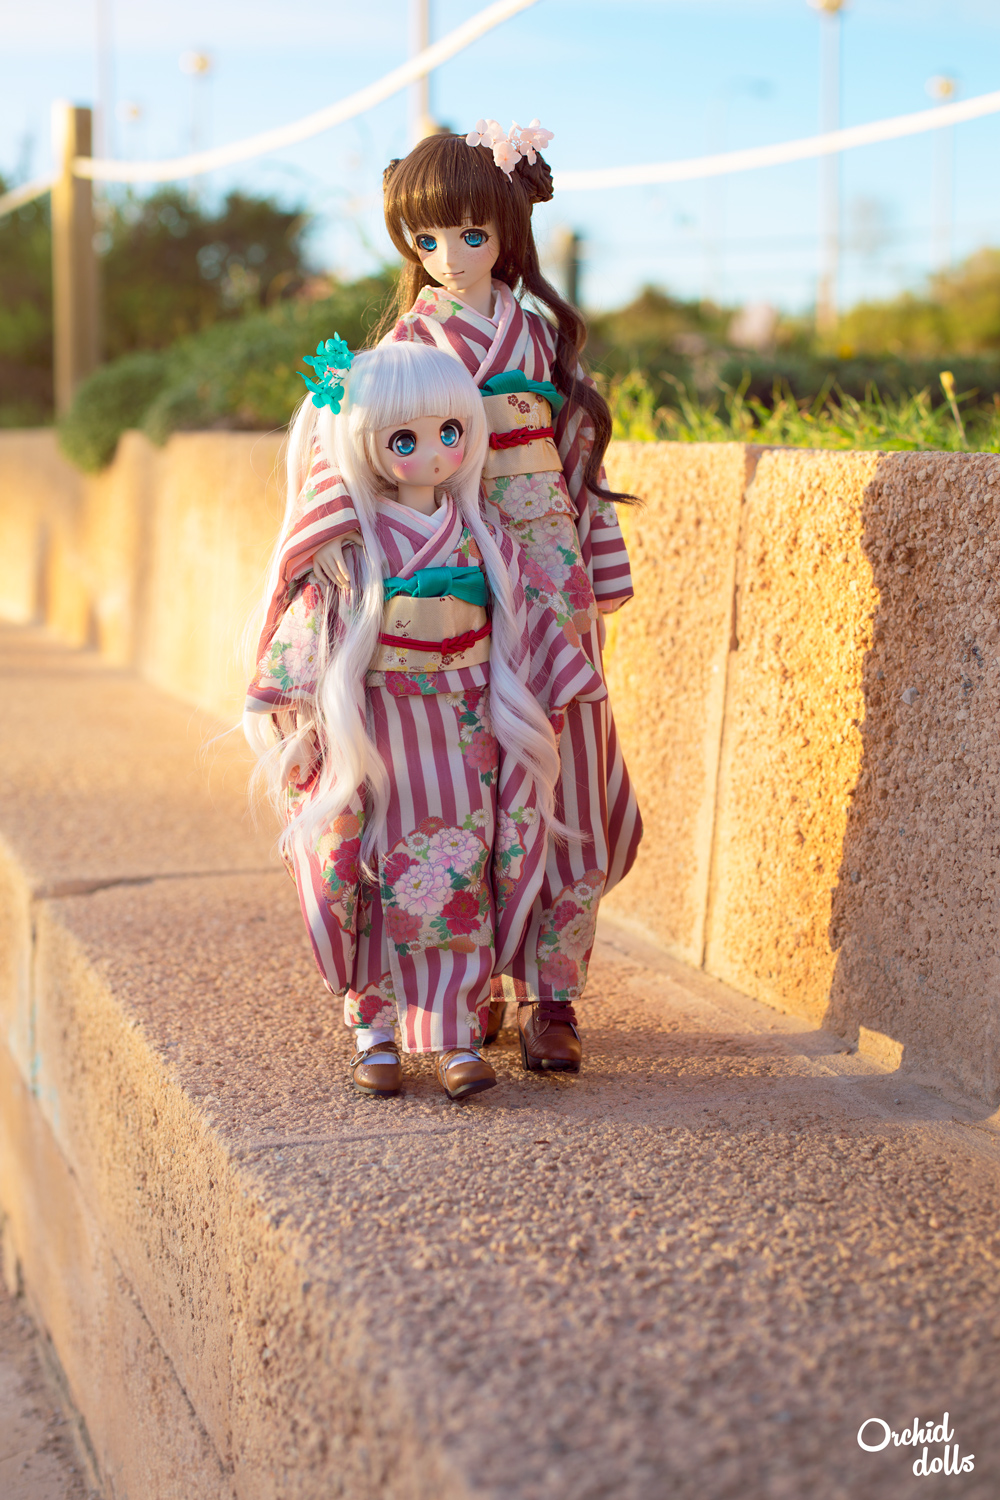 custom Dollfie Dream DDH-01 and M.O.M.O. caminando con kimono